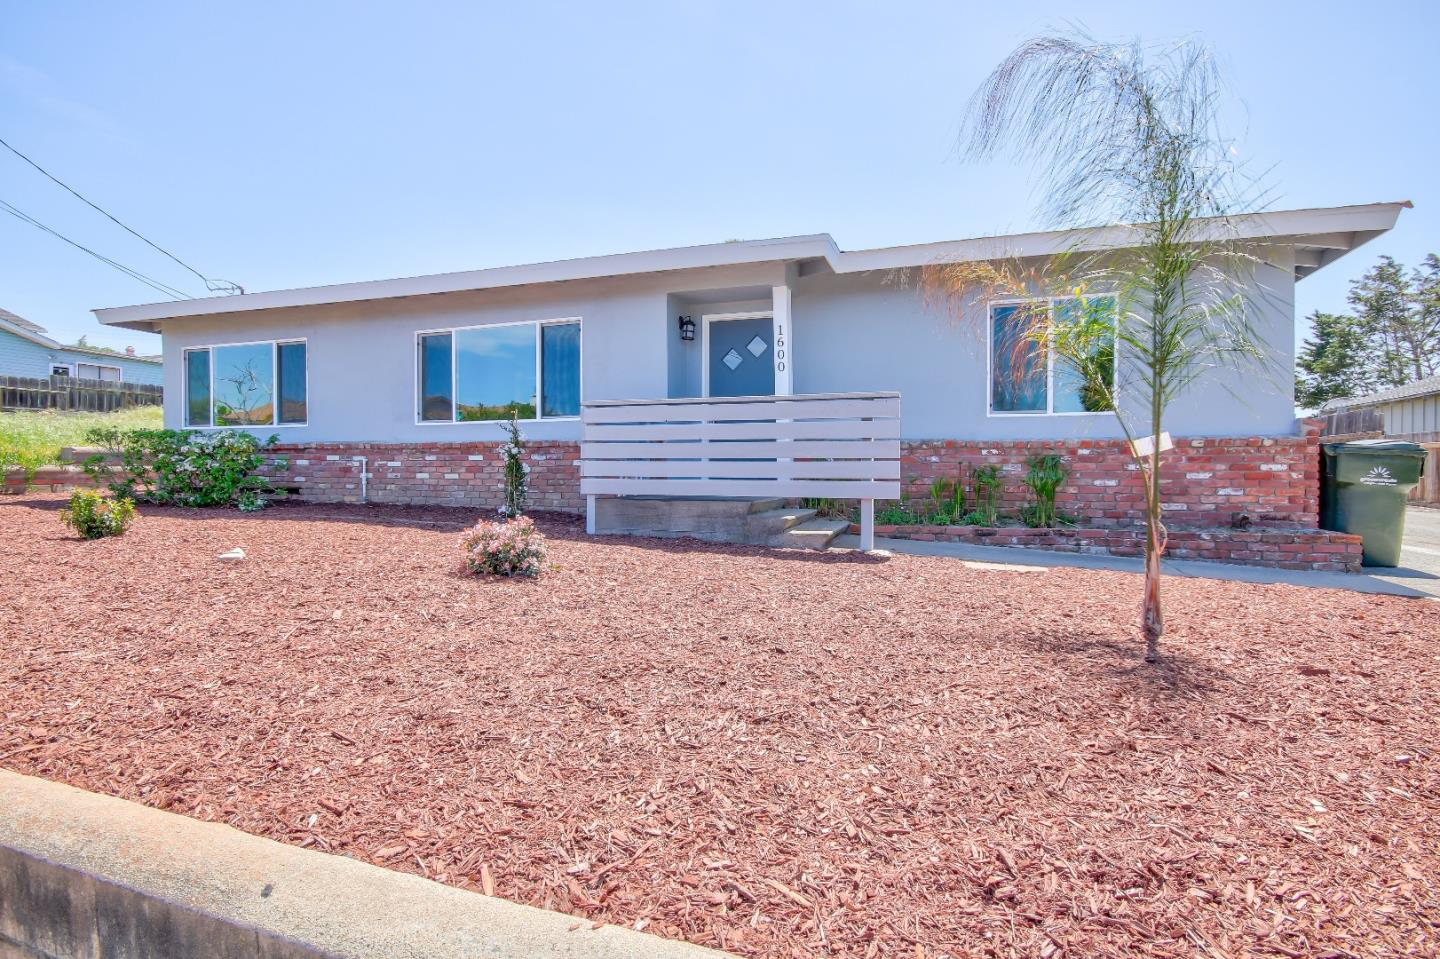 Photo of 1600 Kimball AVE, SEASIDE, CA 93955